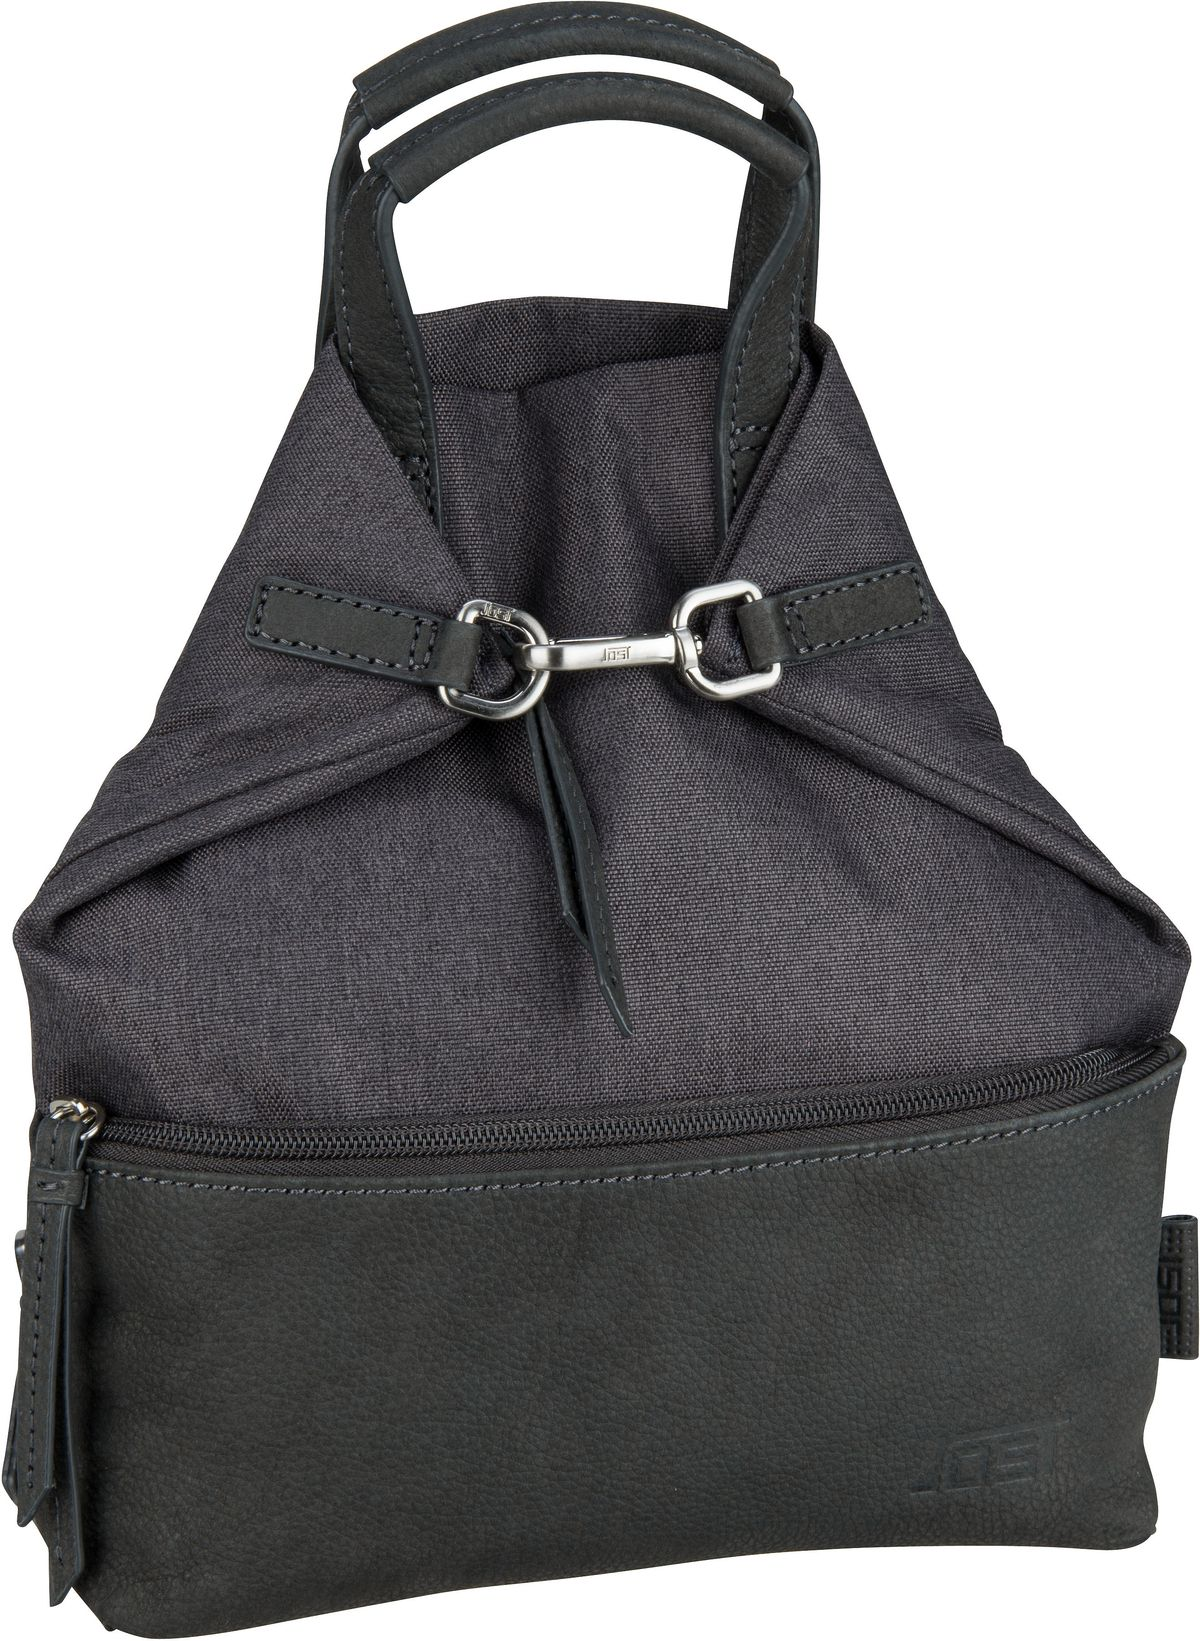 Jost Rucksack / Daypack 2715 X-Change Bag Mini Dark Grey